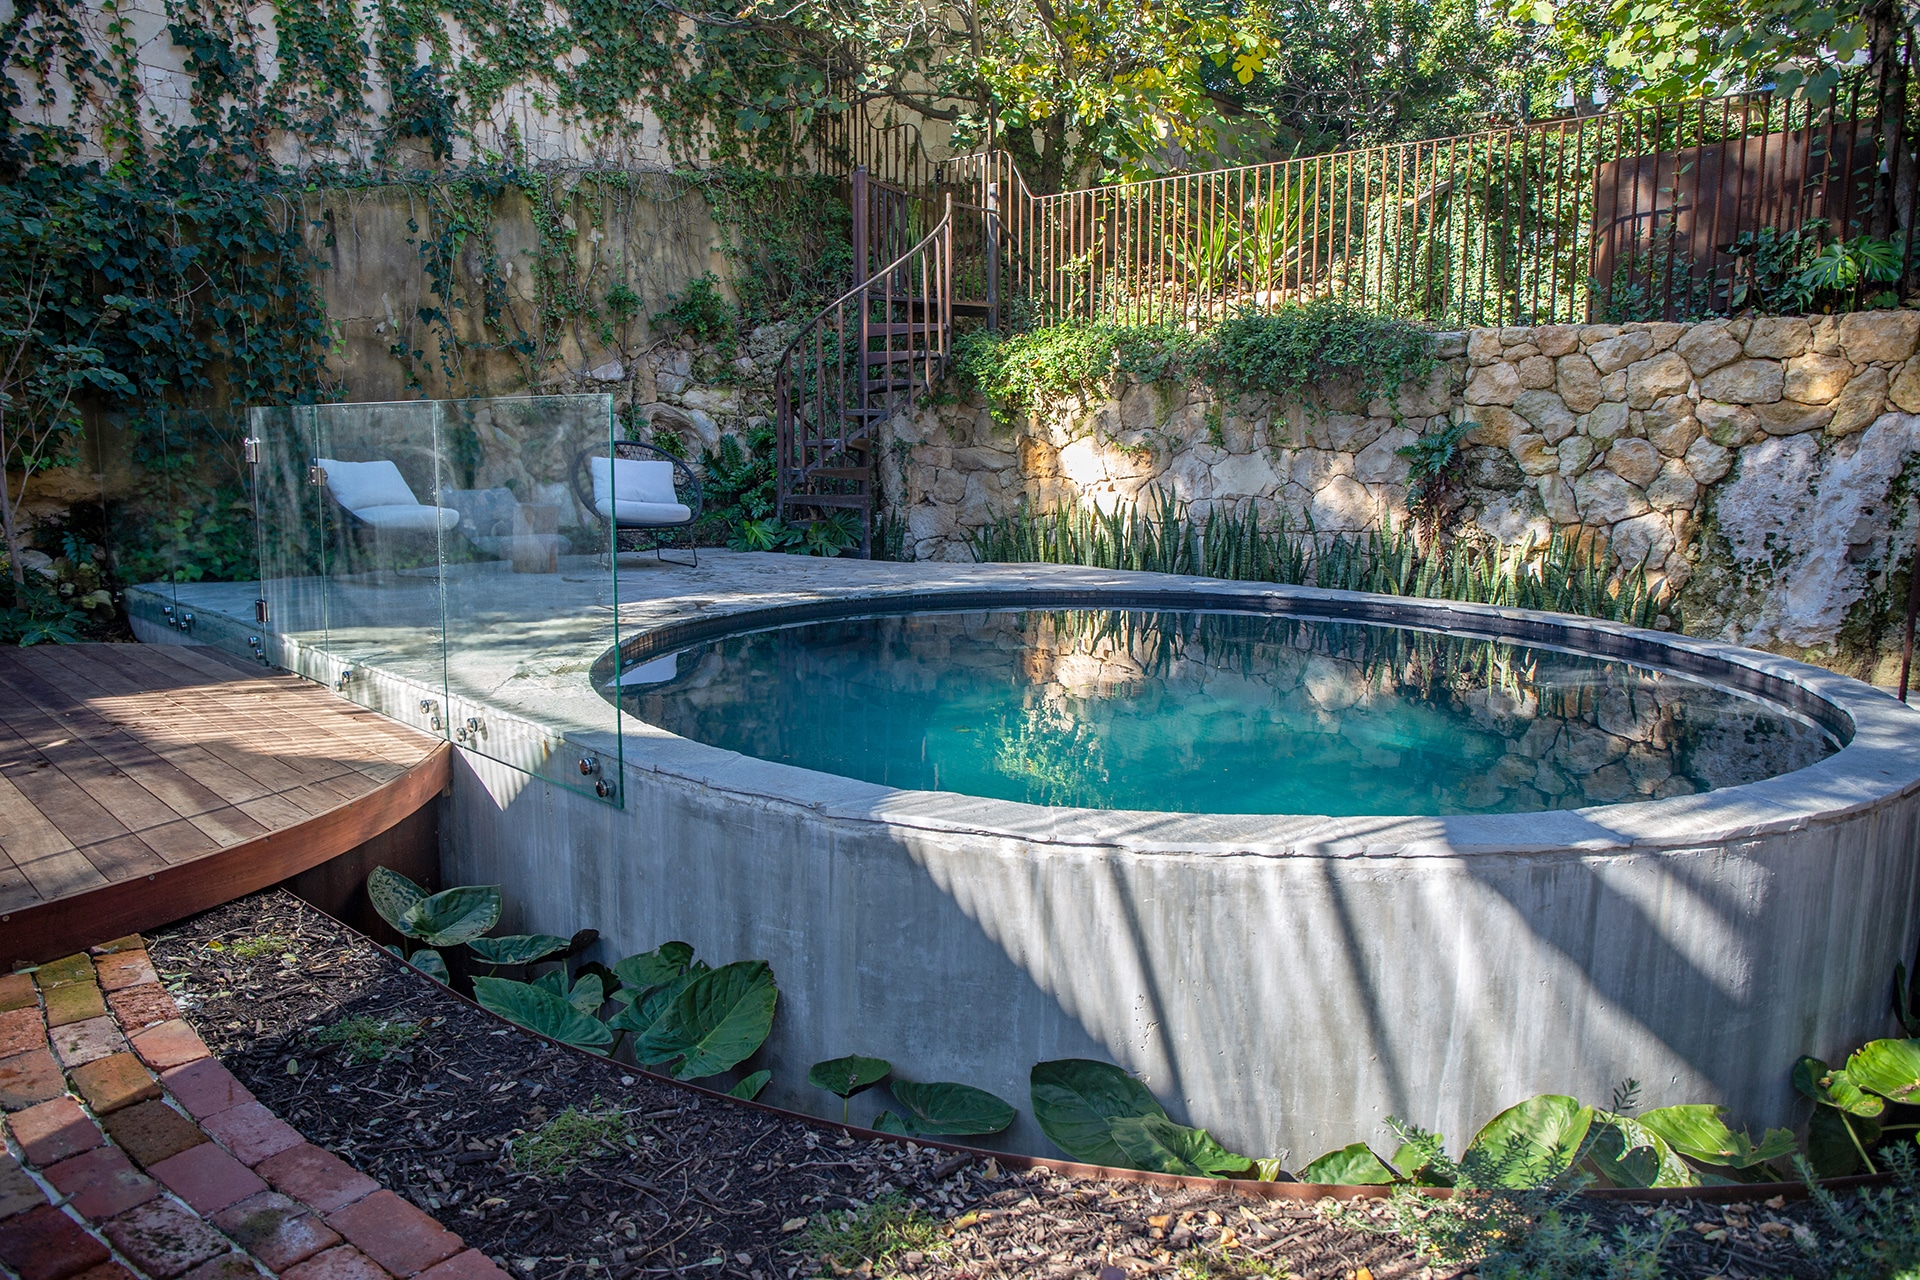 A circular moated pool with crazy paving and Alocasia planting.